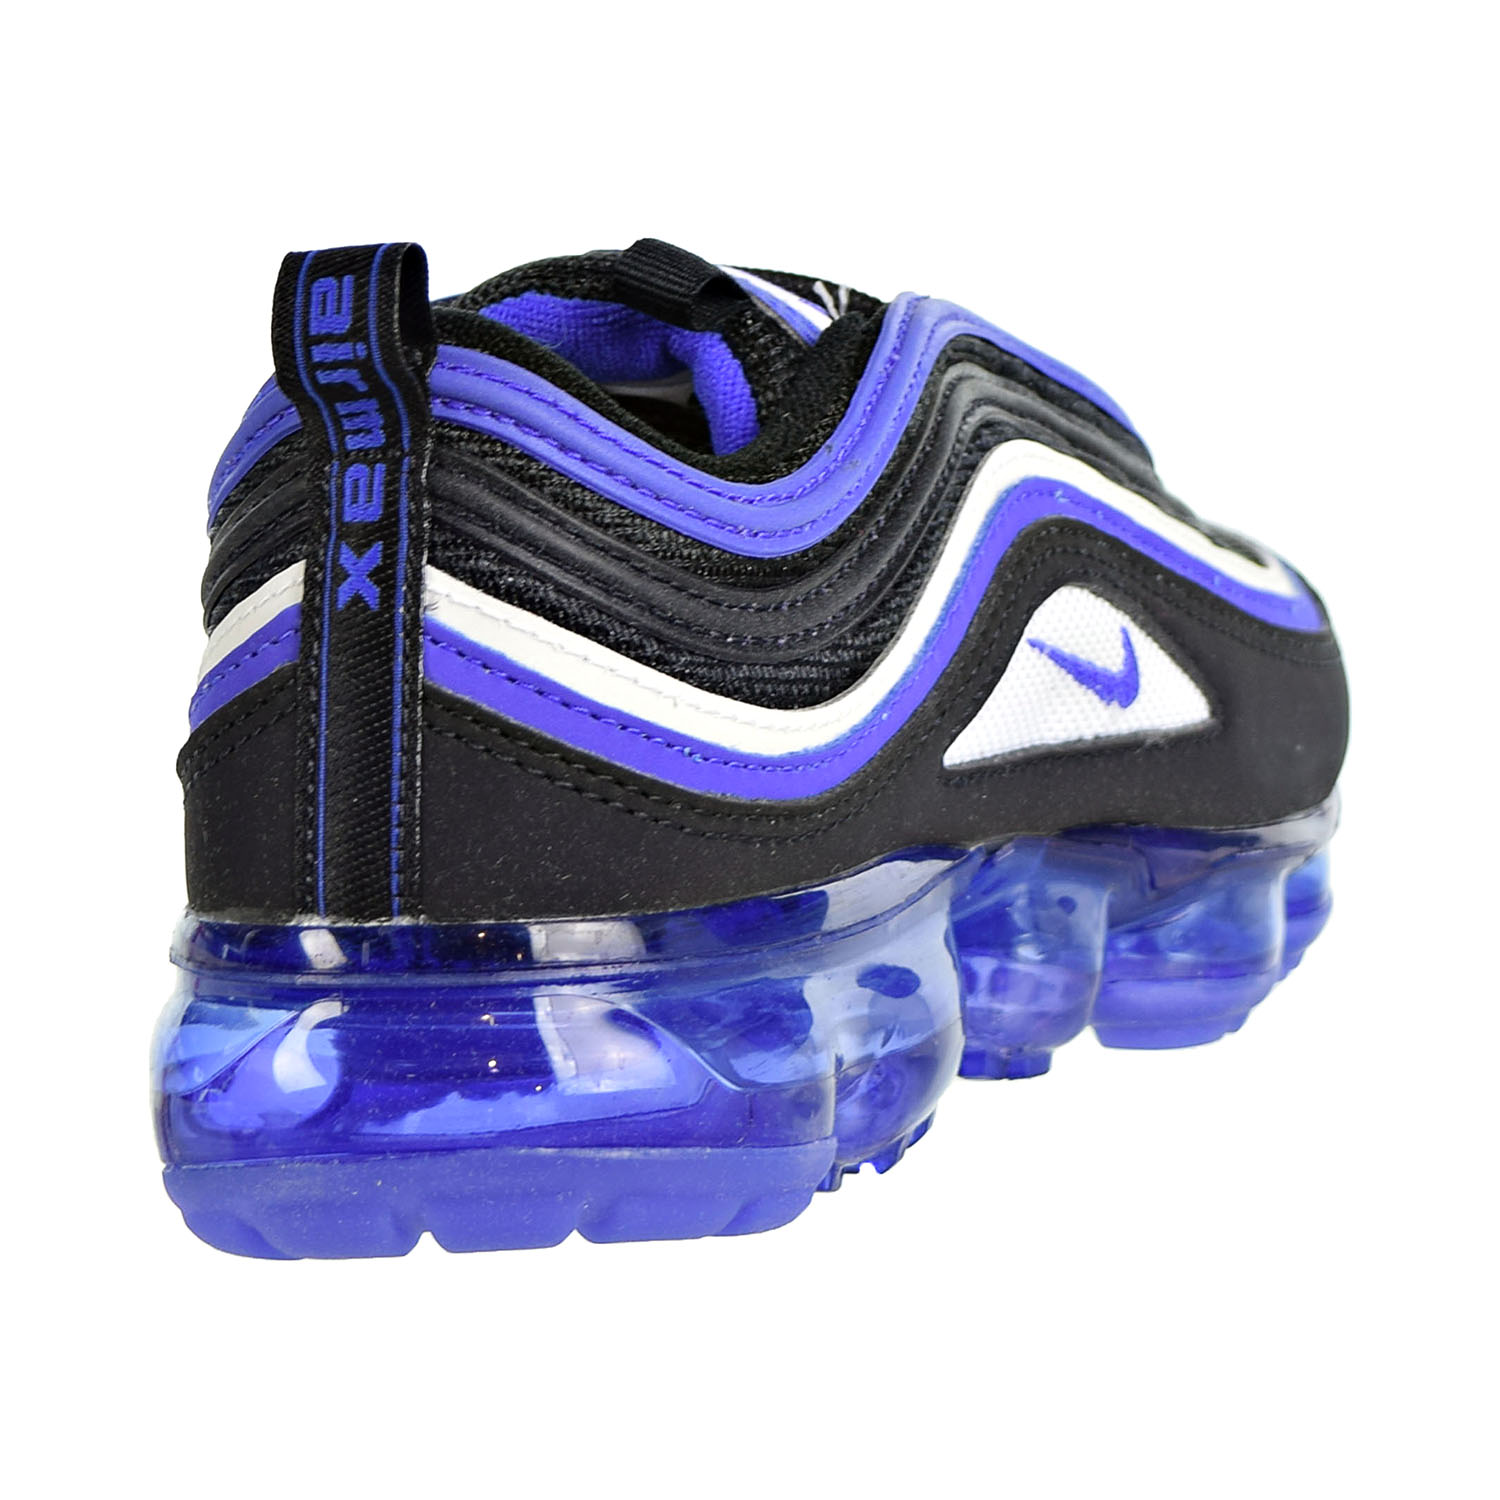 dcf230fc9b5a1 Nike Air Vapormax  97 (GS) Big Kids  Shoes Black Persian Violet White  bv1153-001